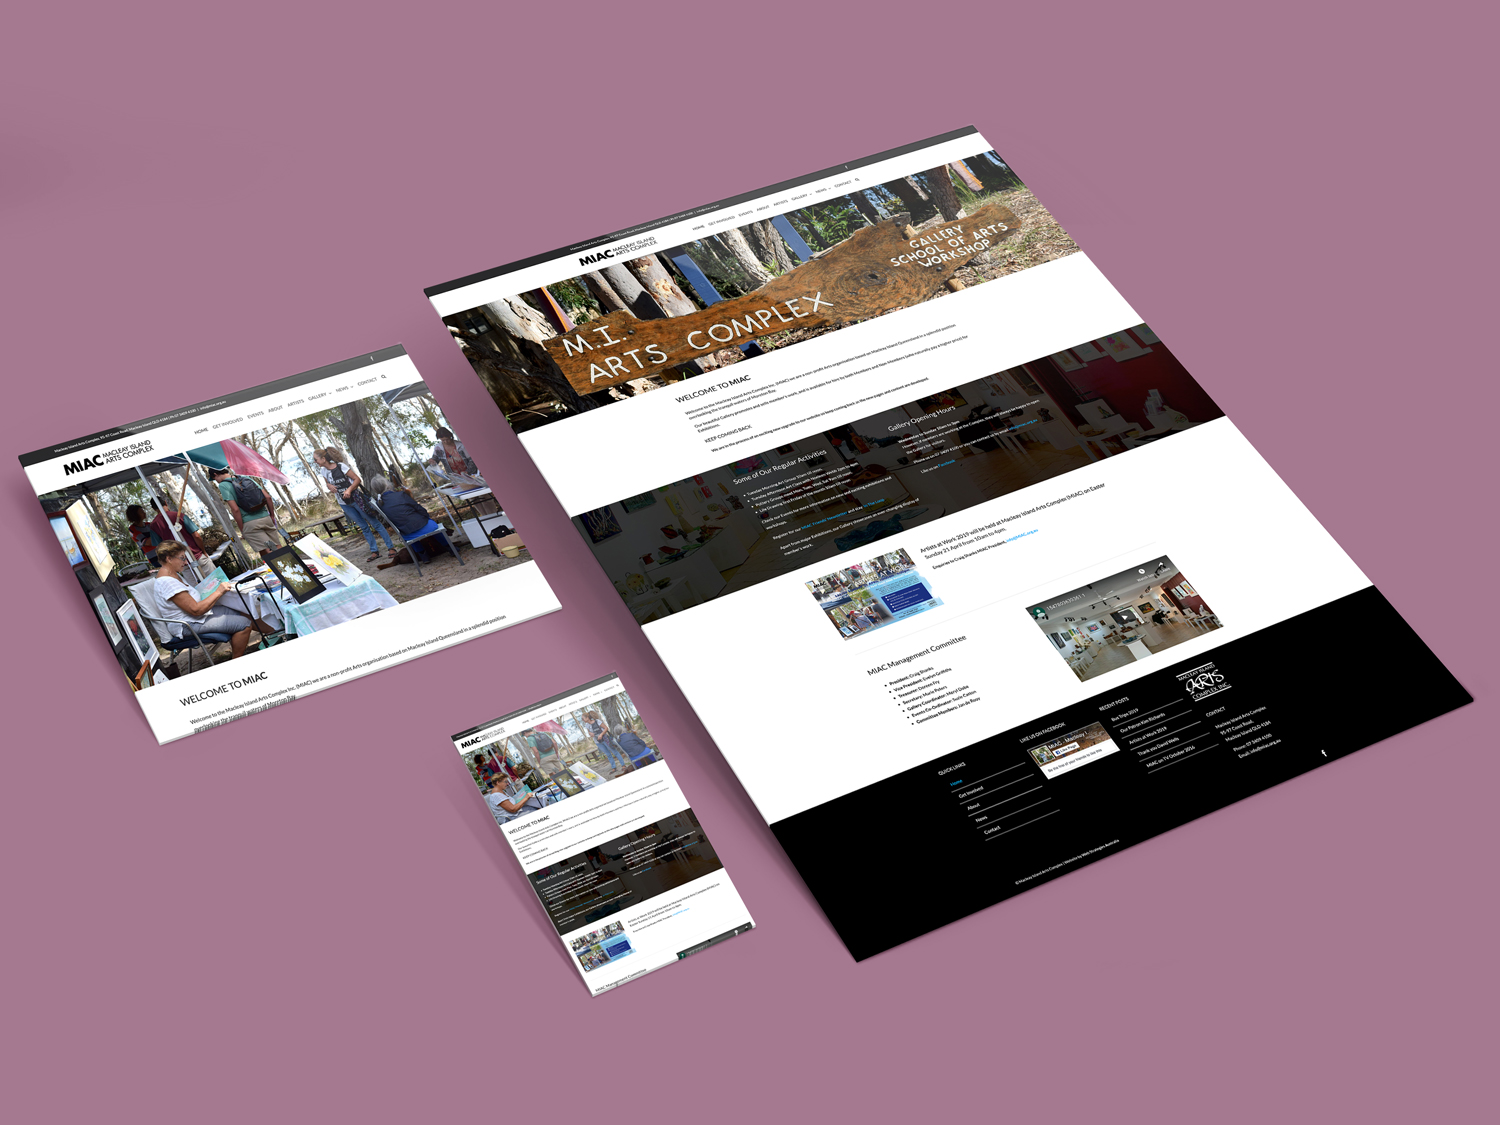 Purple Possum Design – Web Design Wangaratta – Macleay Island Arts Centre